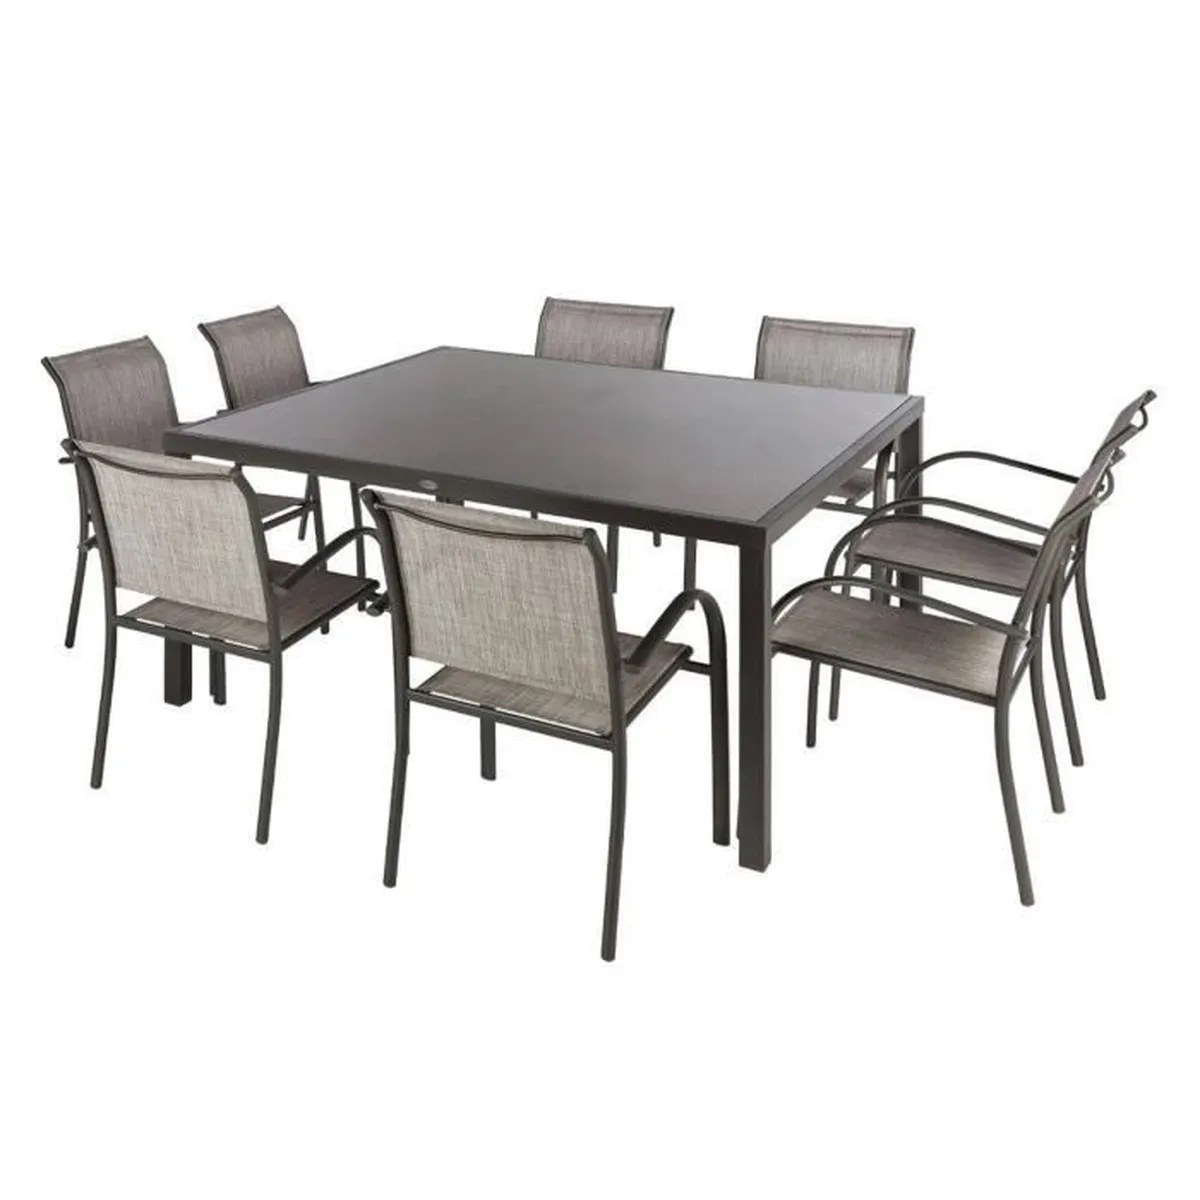 Table Carrée 8 Personnes Dimensions Table Carrée En Aluminium De Coloris Taupe Mastic Dim